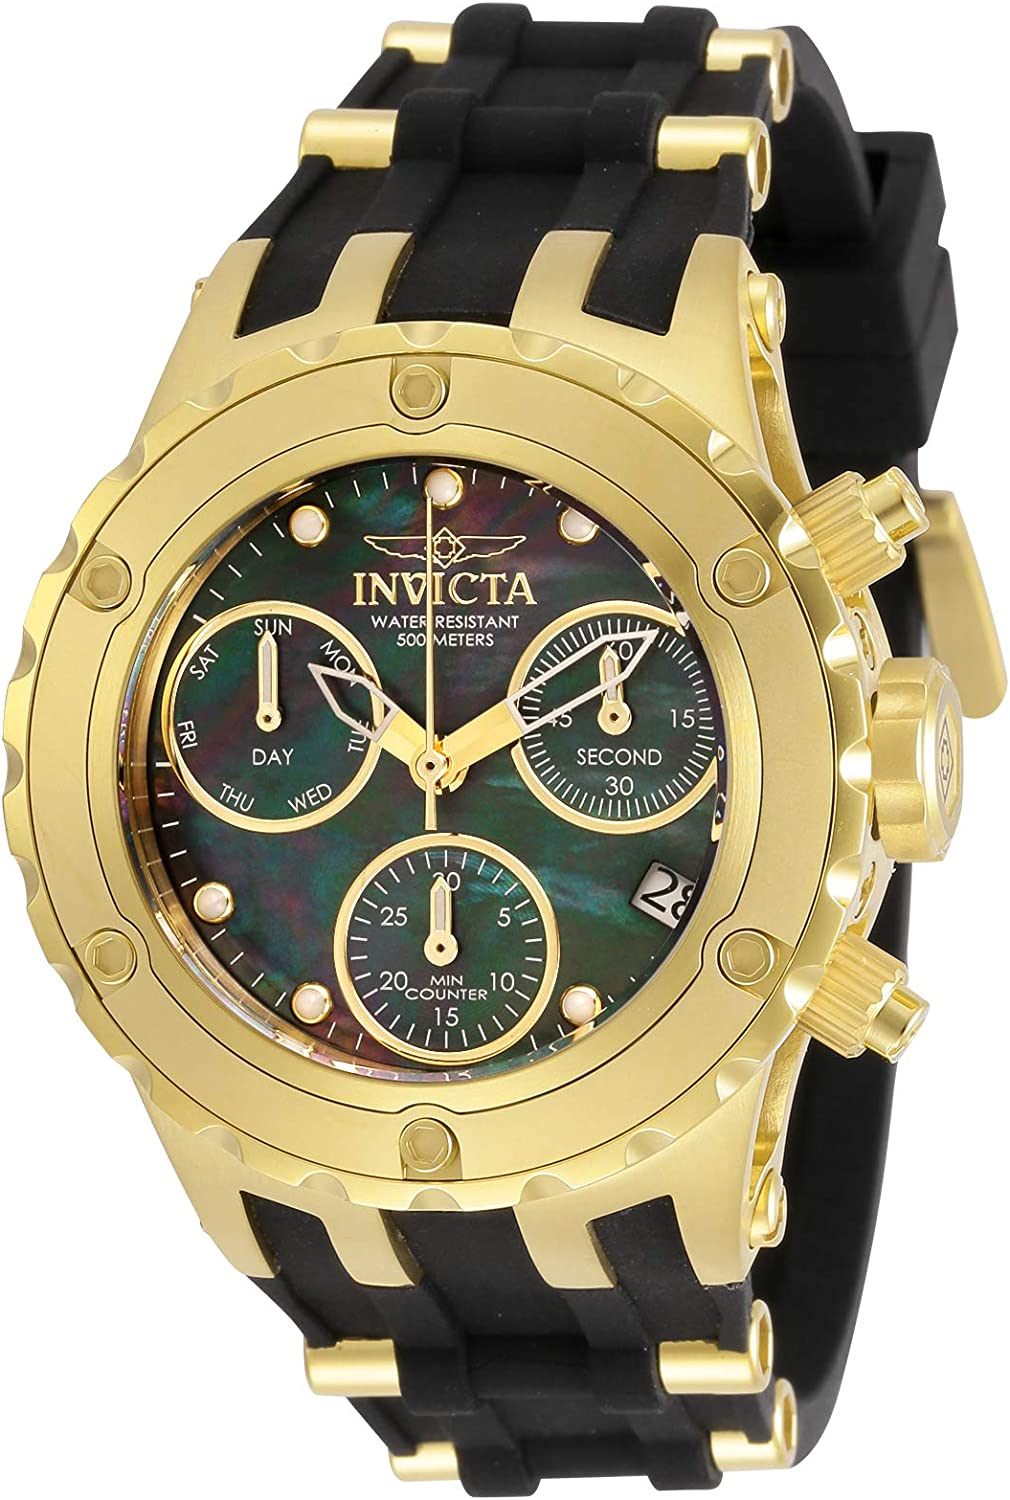 Invicta Women's Specialty Quartz Watch with Stainless Steel and Silicone Strap, Two (Black and Gold-Tone), 23.5 (Model: 30428)